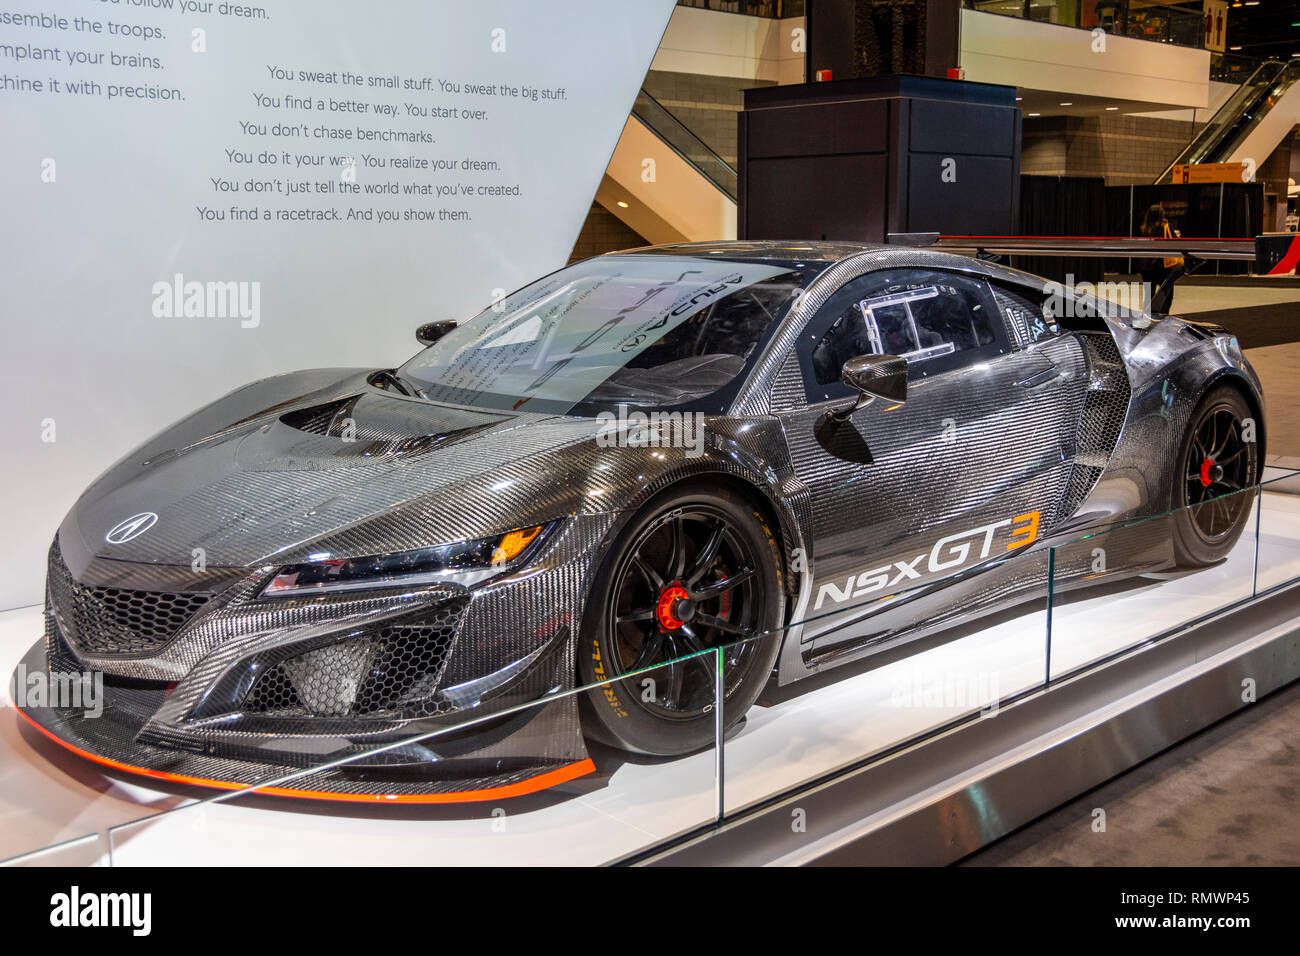 Chicago, IL, USA - February 7, 2019: Shot of the Acura NSX GT3 racing car at the 2019 Chicago Auto Show. - Stock Image